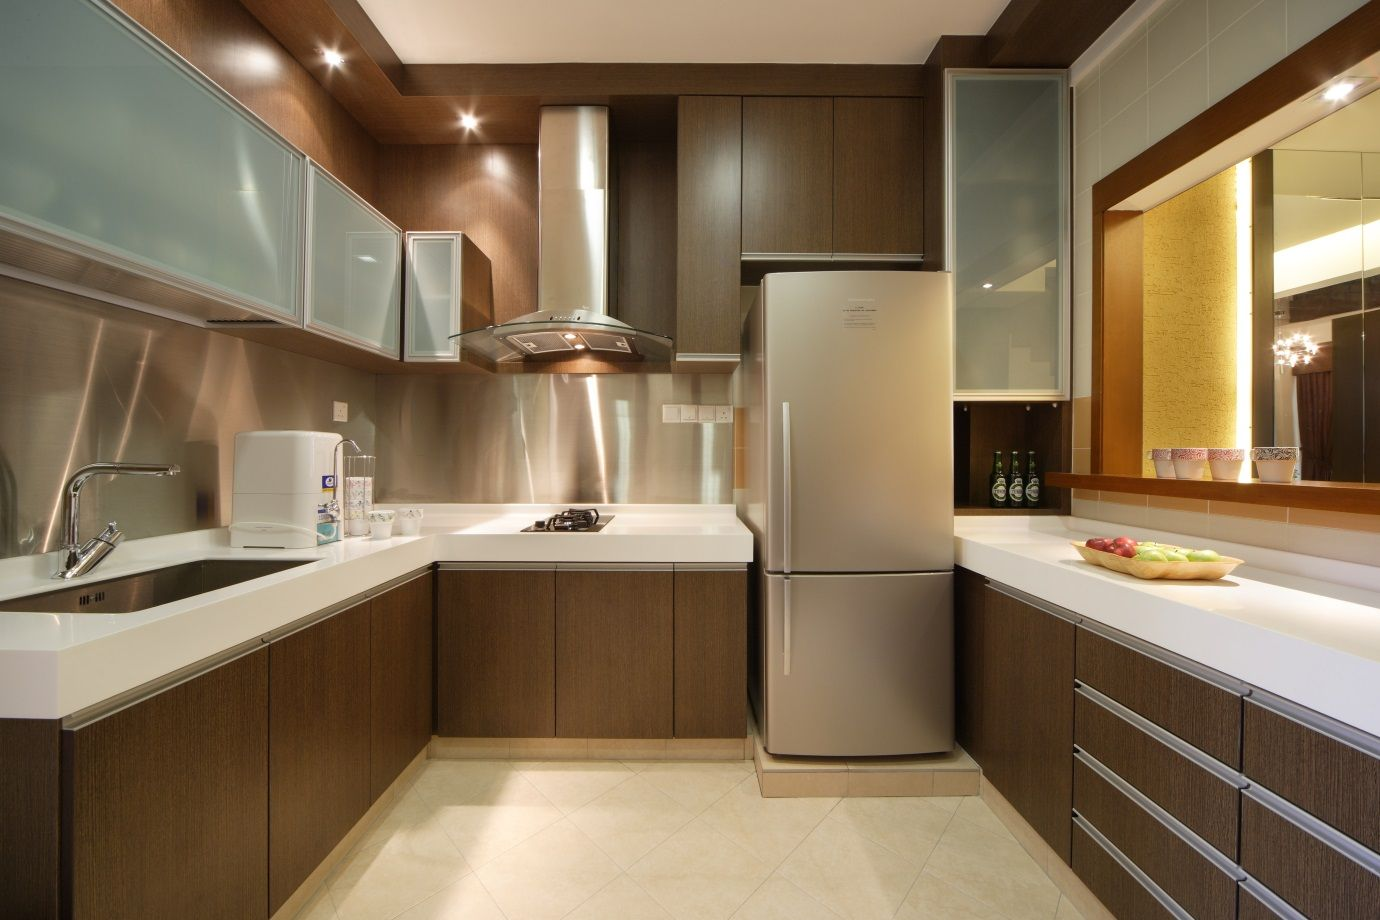 Malaysia modern kitchen cabinet design google search architectural interior design Kitchen backsplash ideas singapore